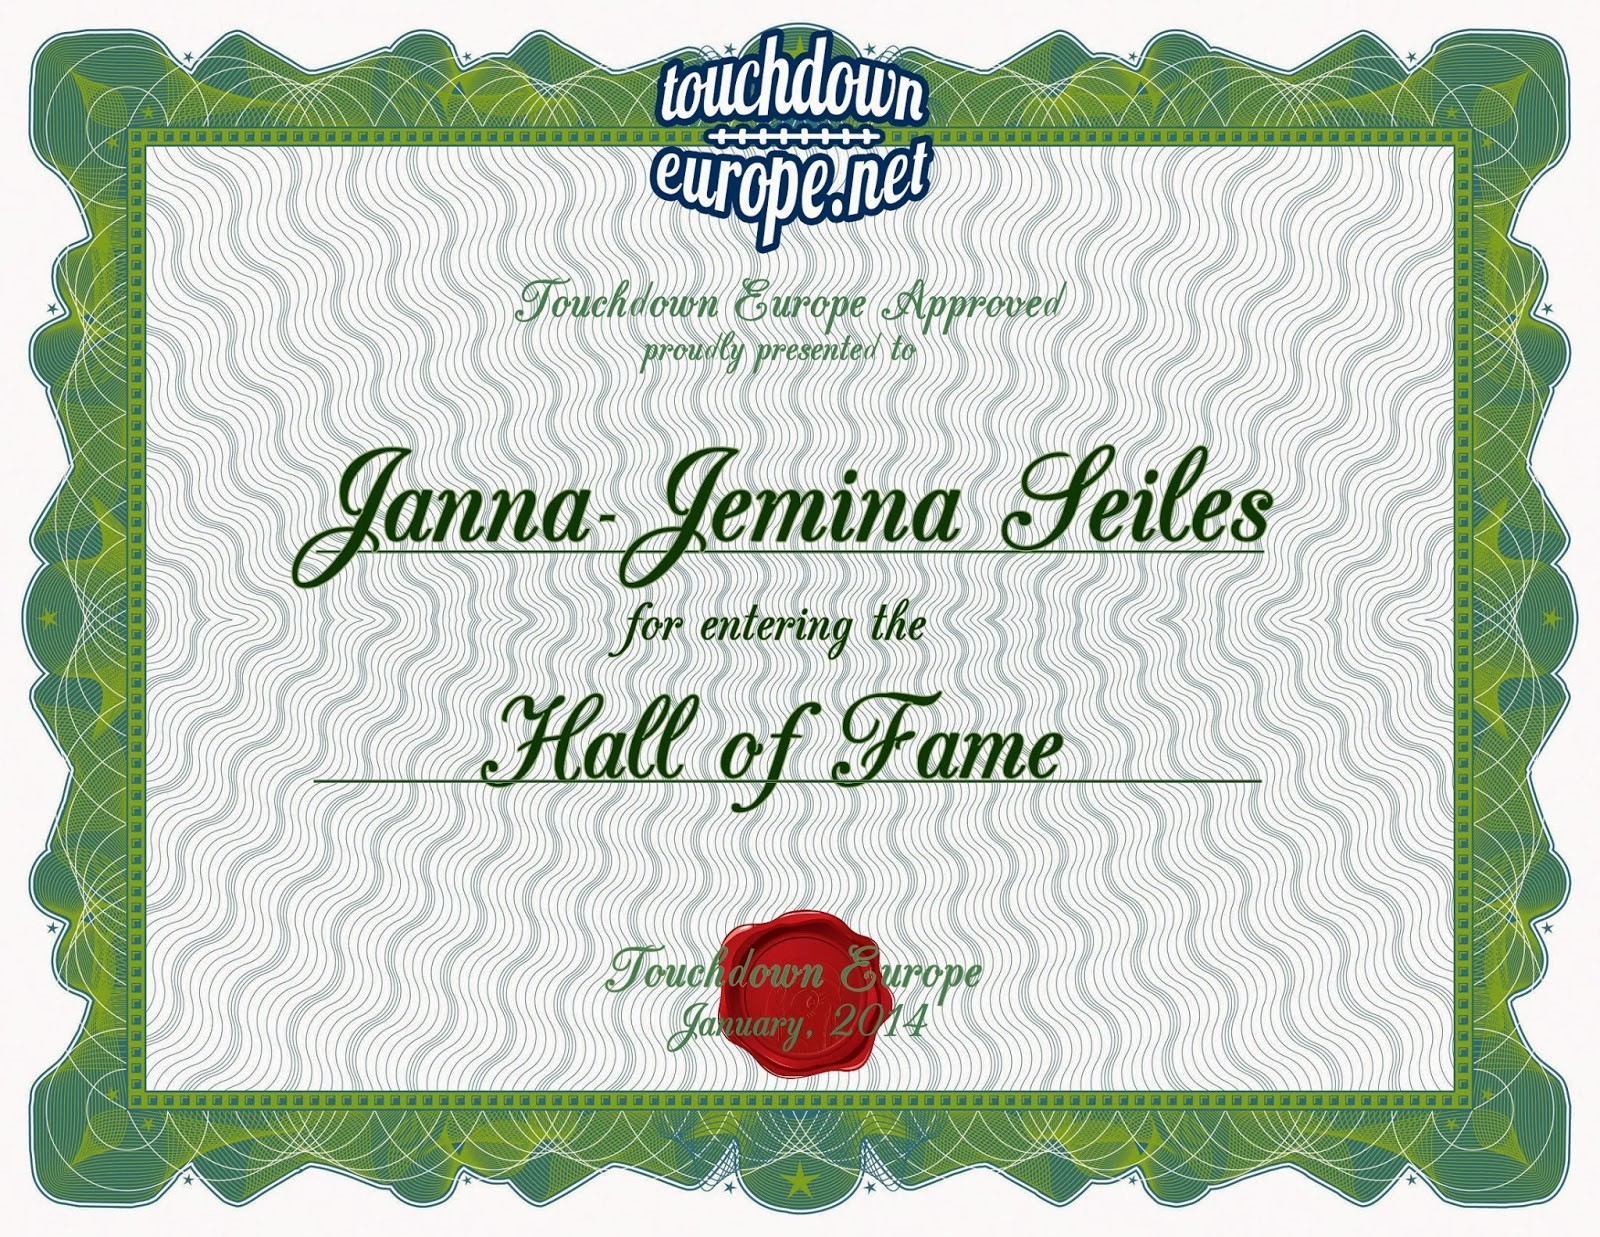 Hall Of Fame Certificate Template Awesome Hall Fame Janna Jemina Seiles Wr touchdown Europe